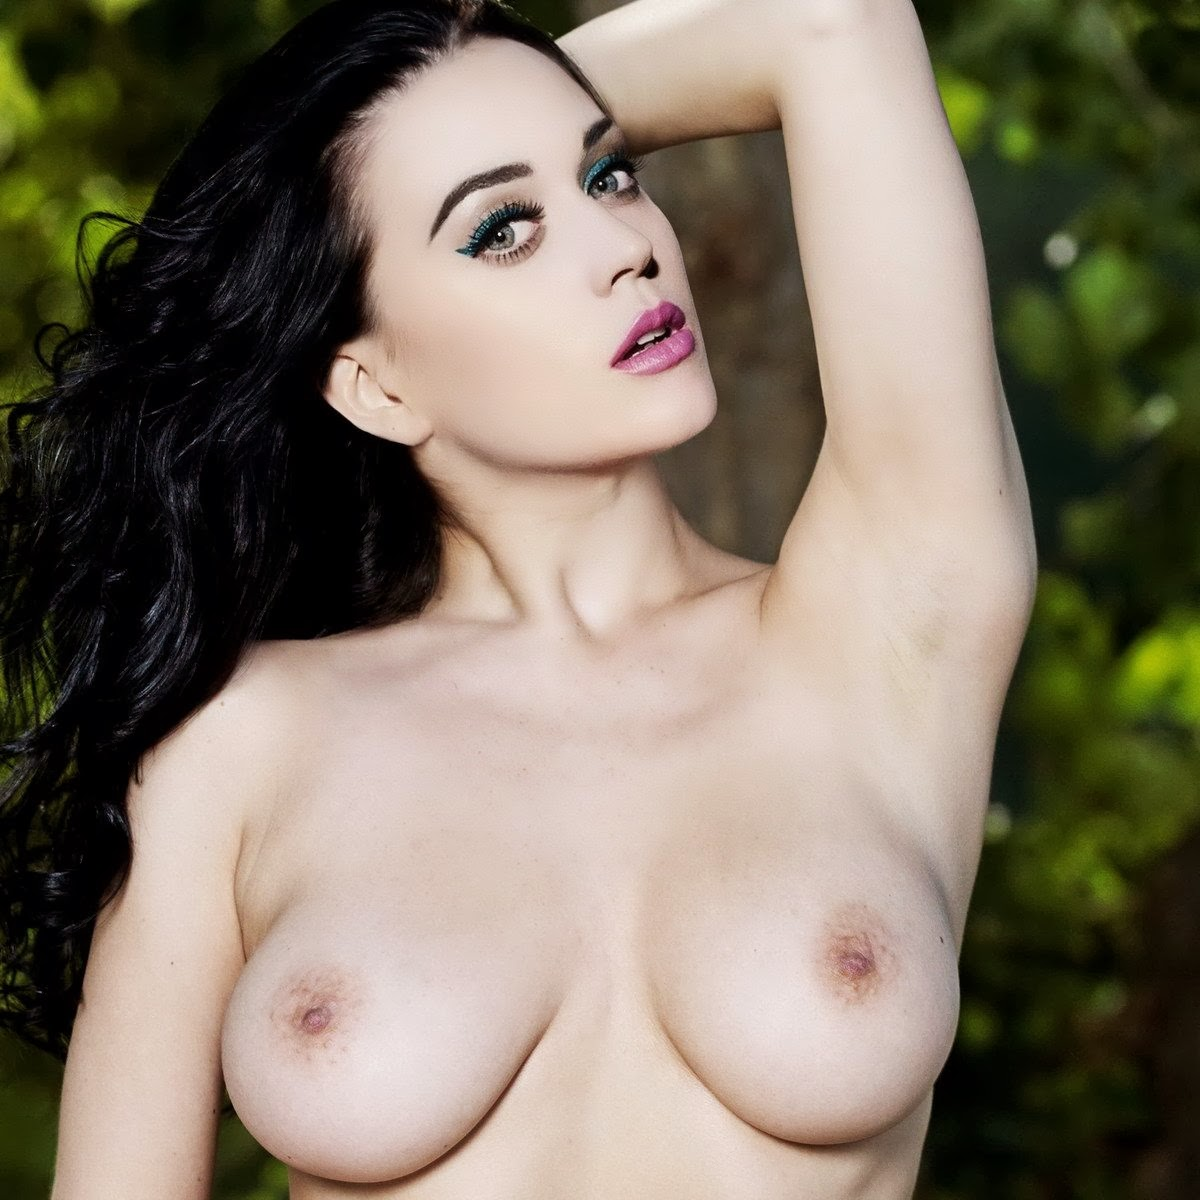 Katy Perry Nude Shows Huge Boobs While Eating A Banana